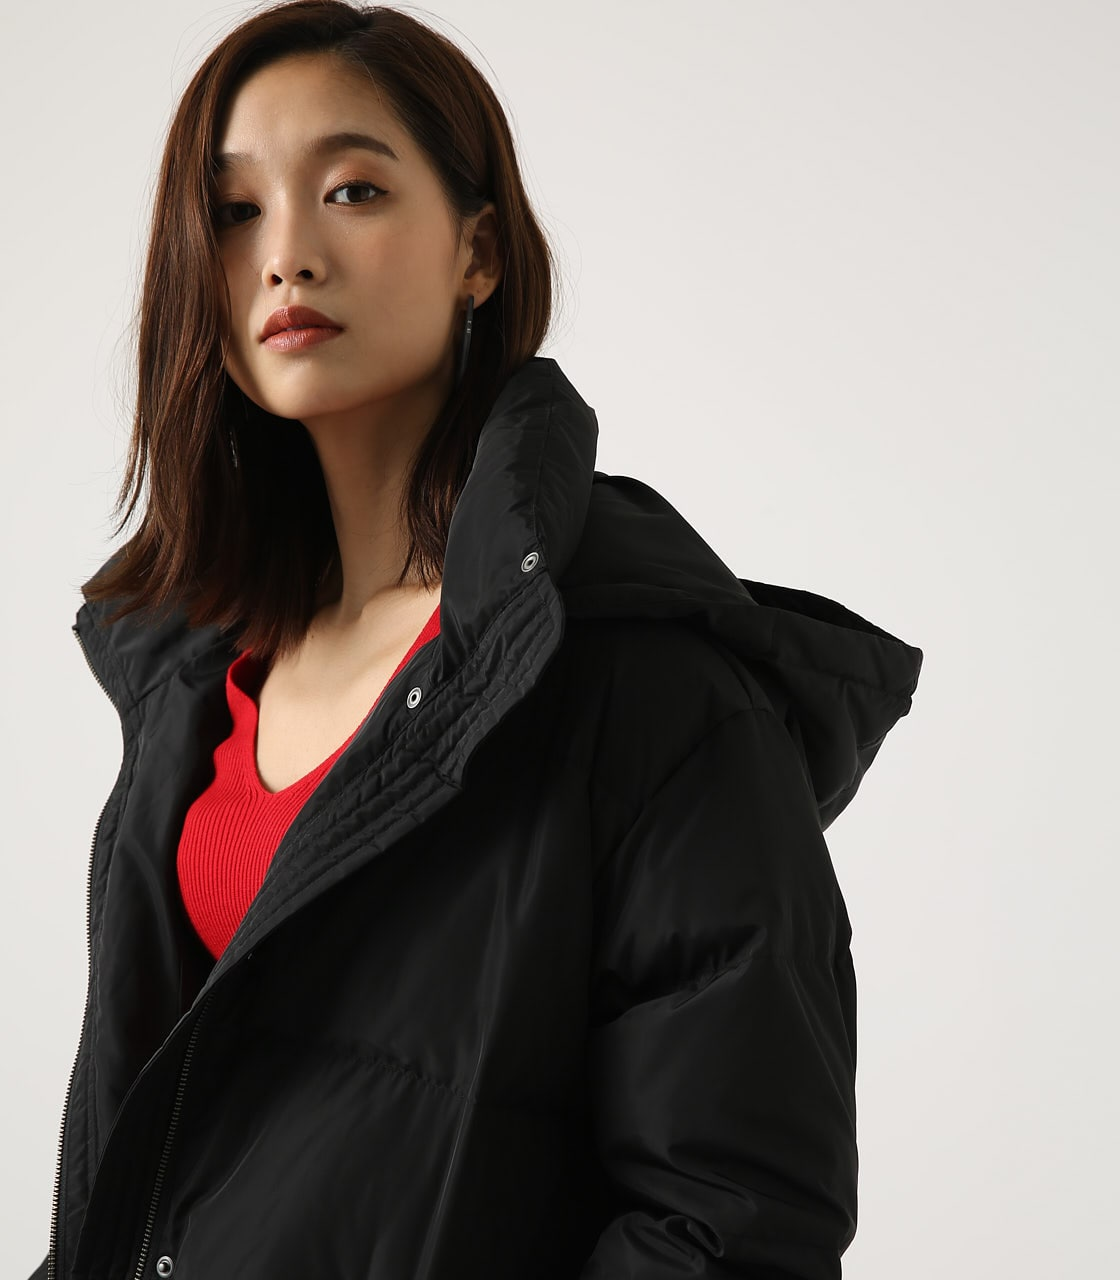 【AZUL BY MOUSSY】コクーン中綿コート 詳細画像 BLK 2